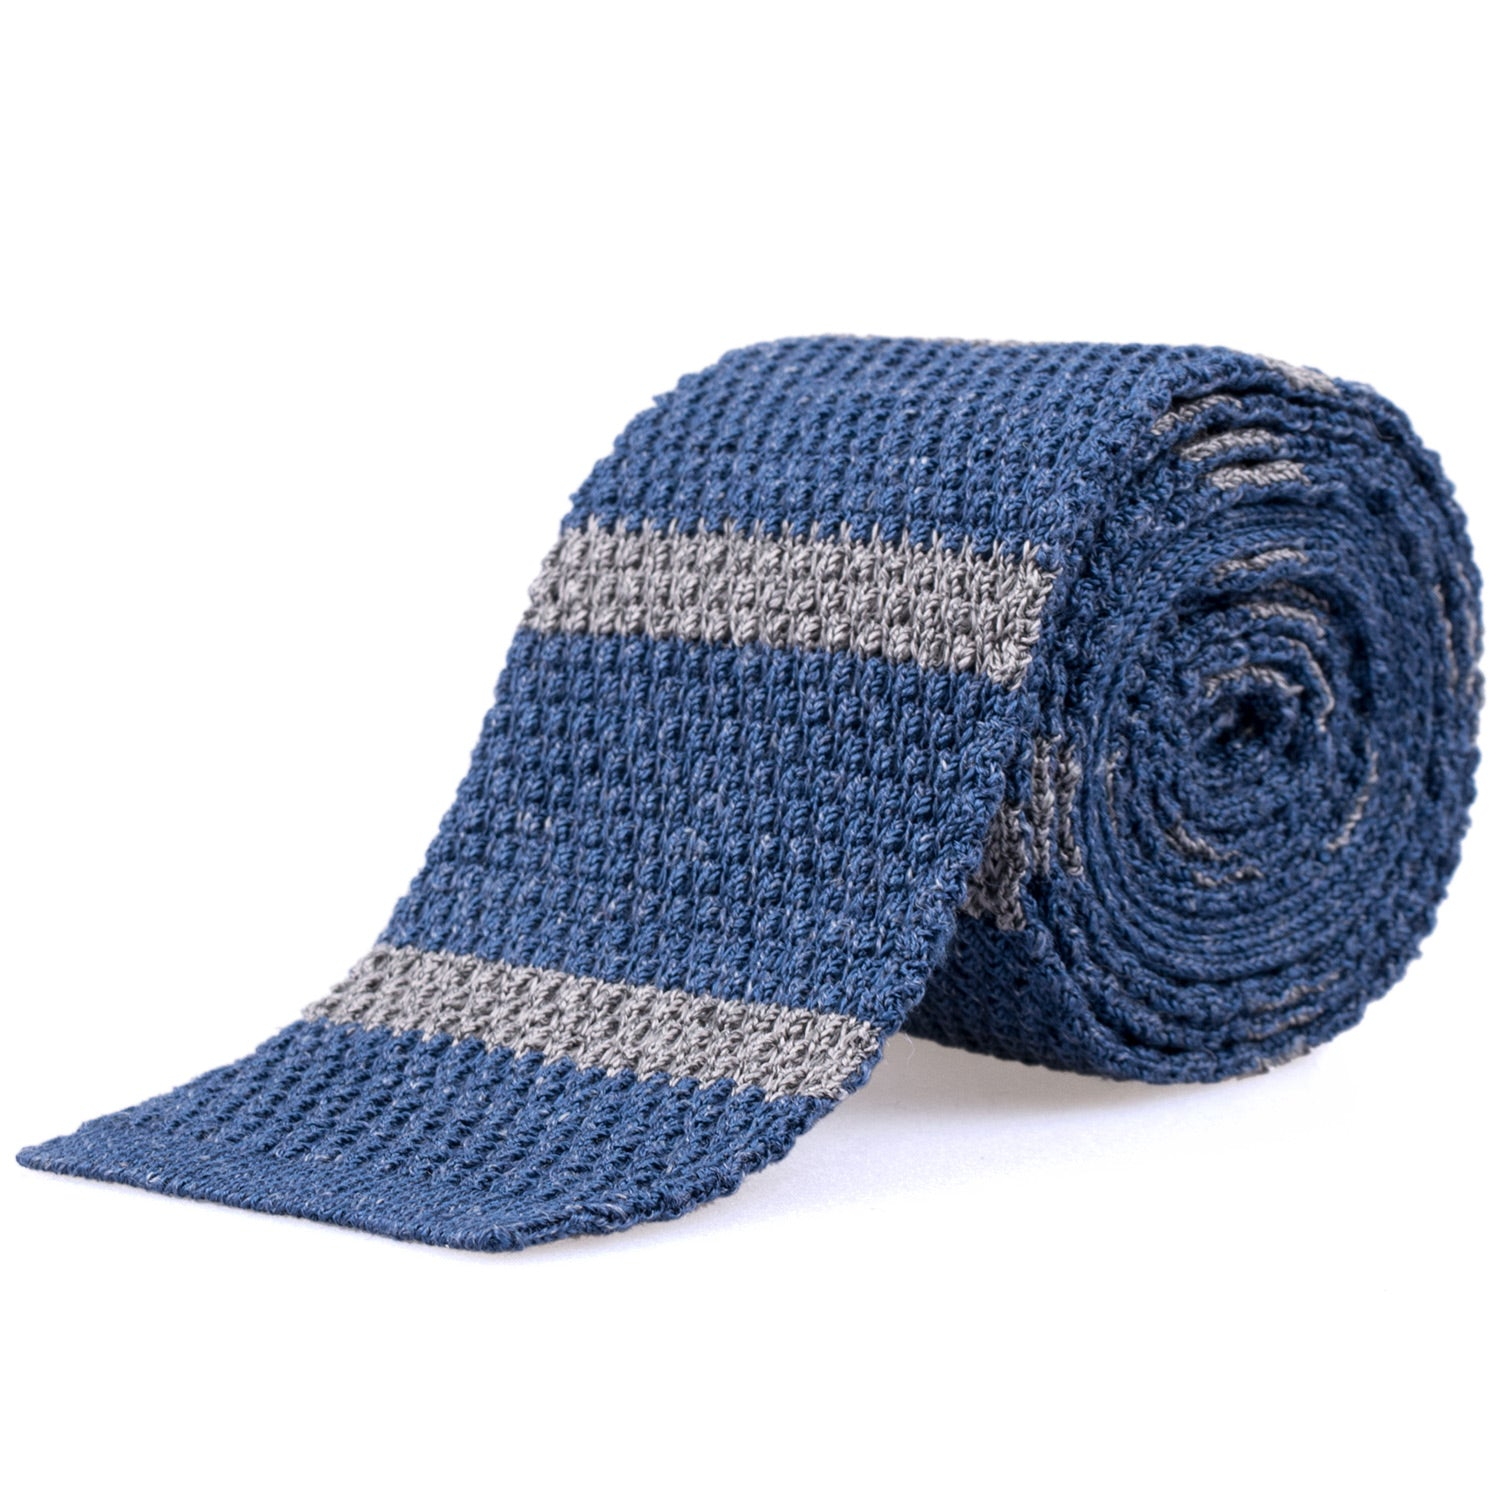 Rosi Collection Strickkrawatte blau-grau gestreift